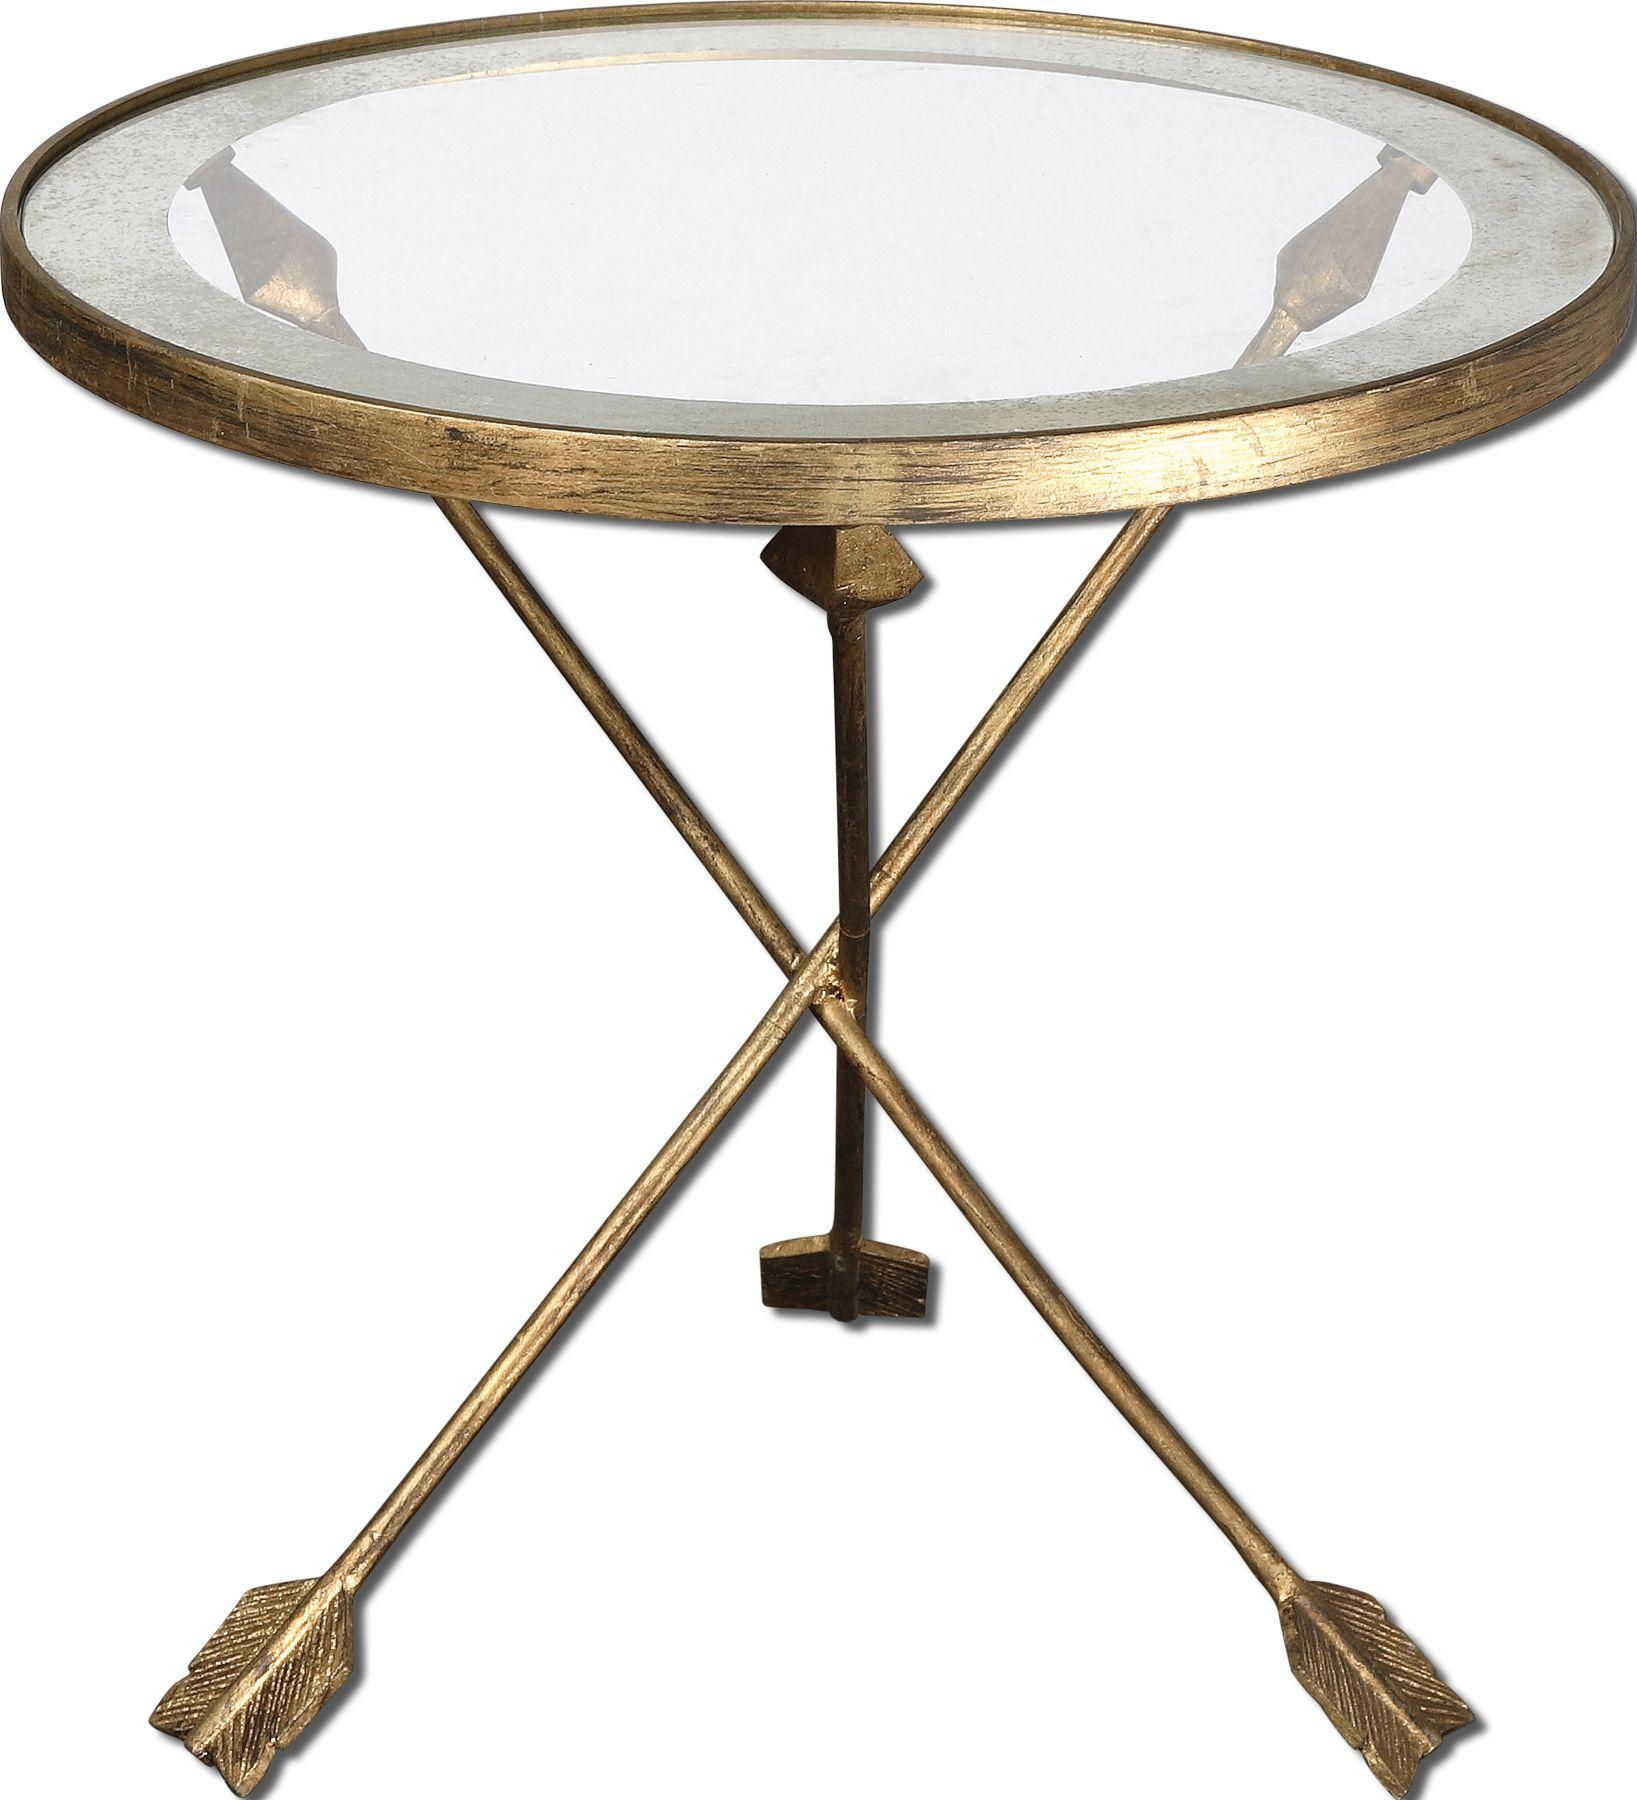 uttermost accent furniture occasional tables aero products color marble top round table tree stump end grey curtains perspex coffee bar height with storage hampton bay covers